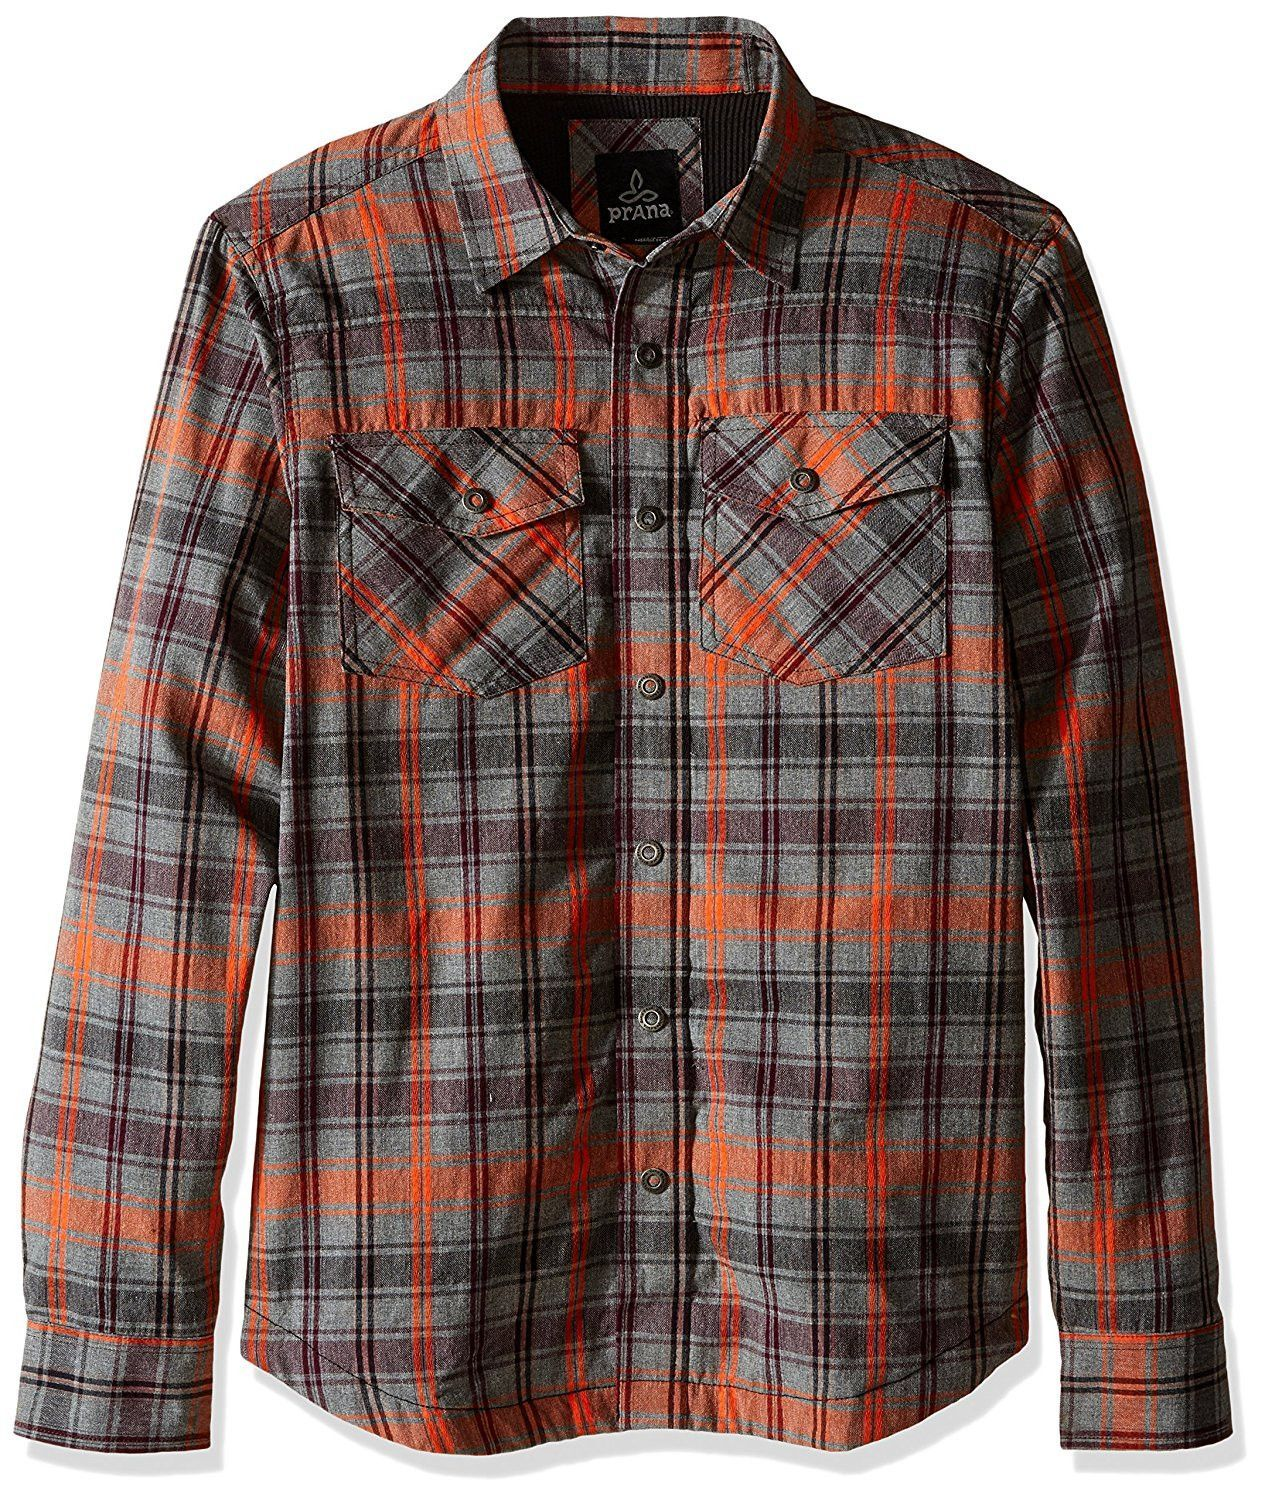 Flannel t shirts  Asylum Flannel TShirt by Prana  Products  Pinterest  Products